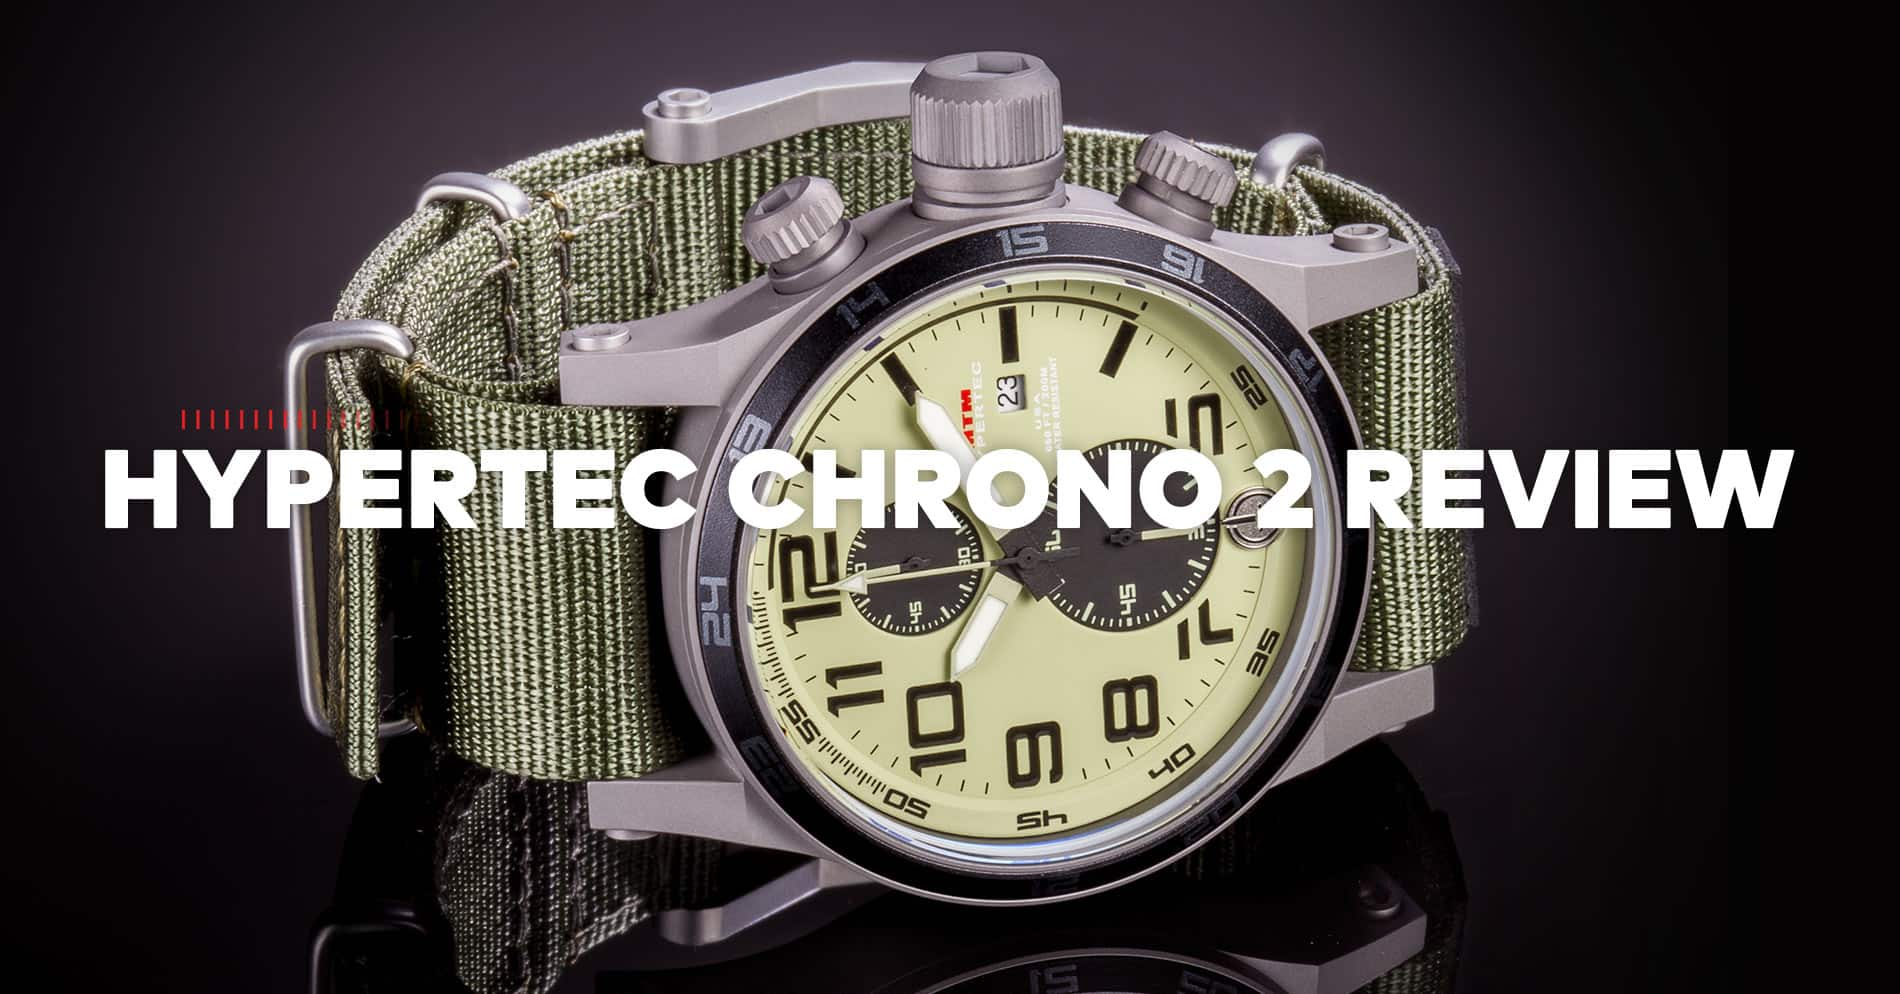 Chronograph Watch Review